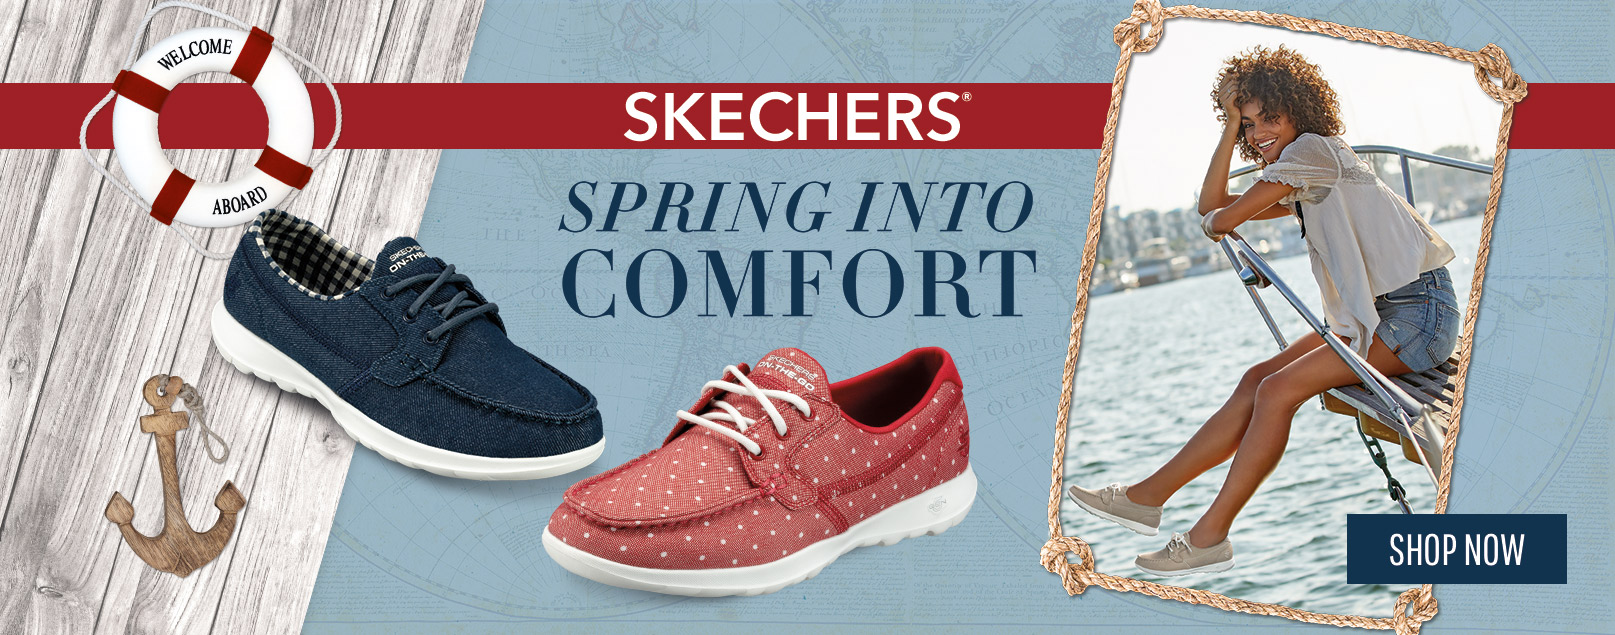 Spring into comfort with the Skechers Performance On the GO Boat Shoe collection.  Yacht ready style with GOwalk inspired comfort, ready for warm weather wear.